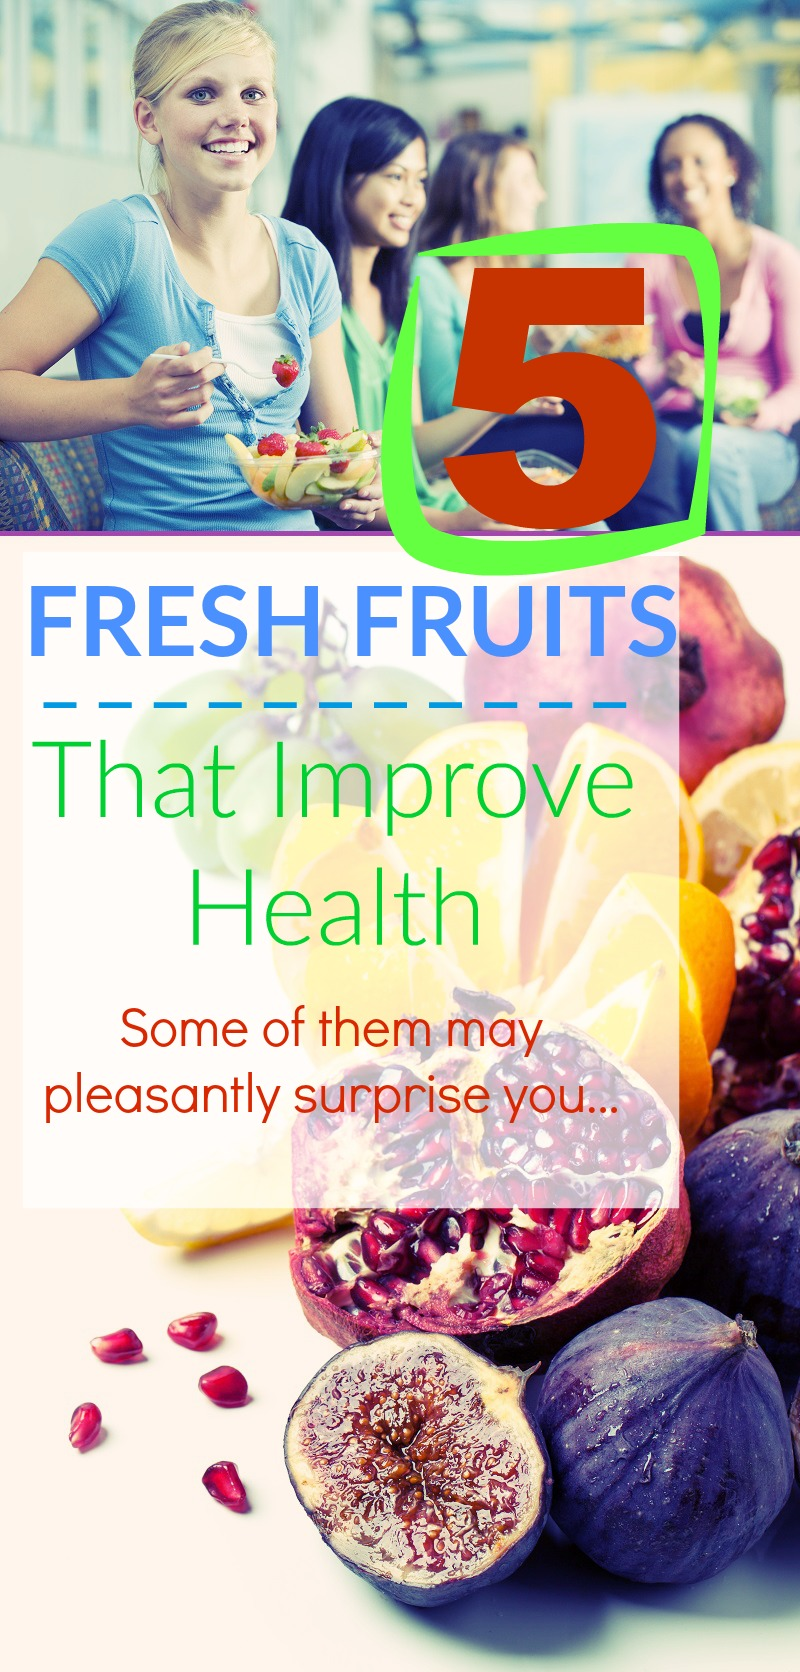 Fruits That Improve Health